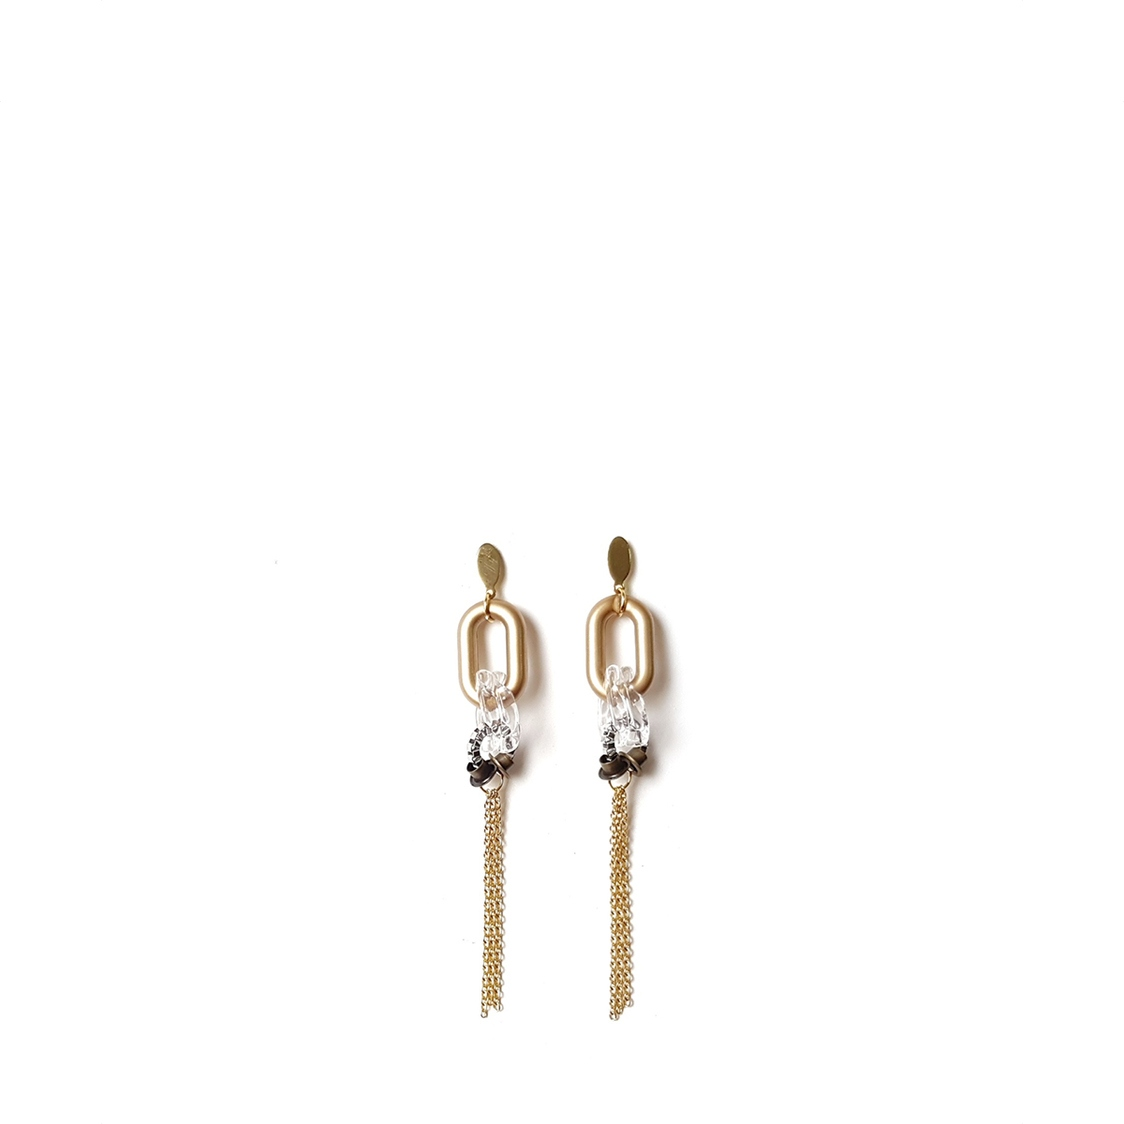 ZURI Earrings GOLDENROD